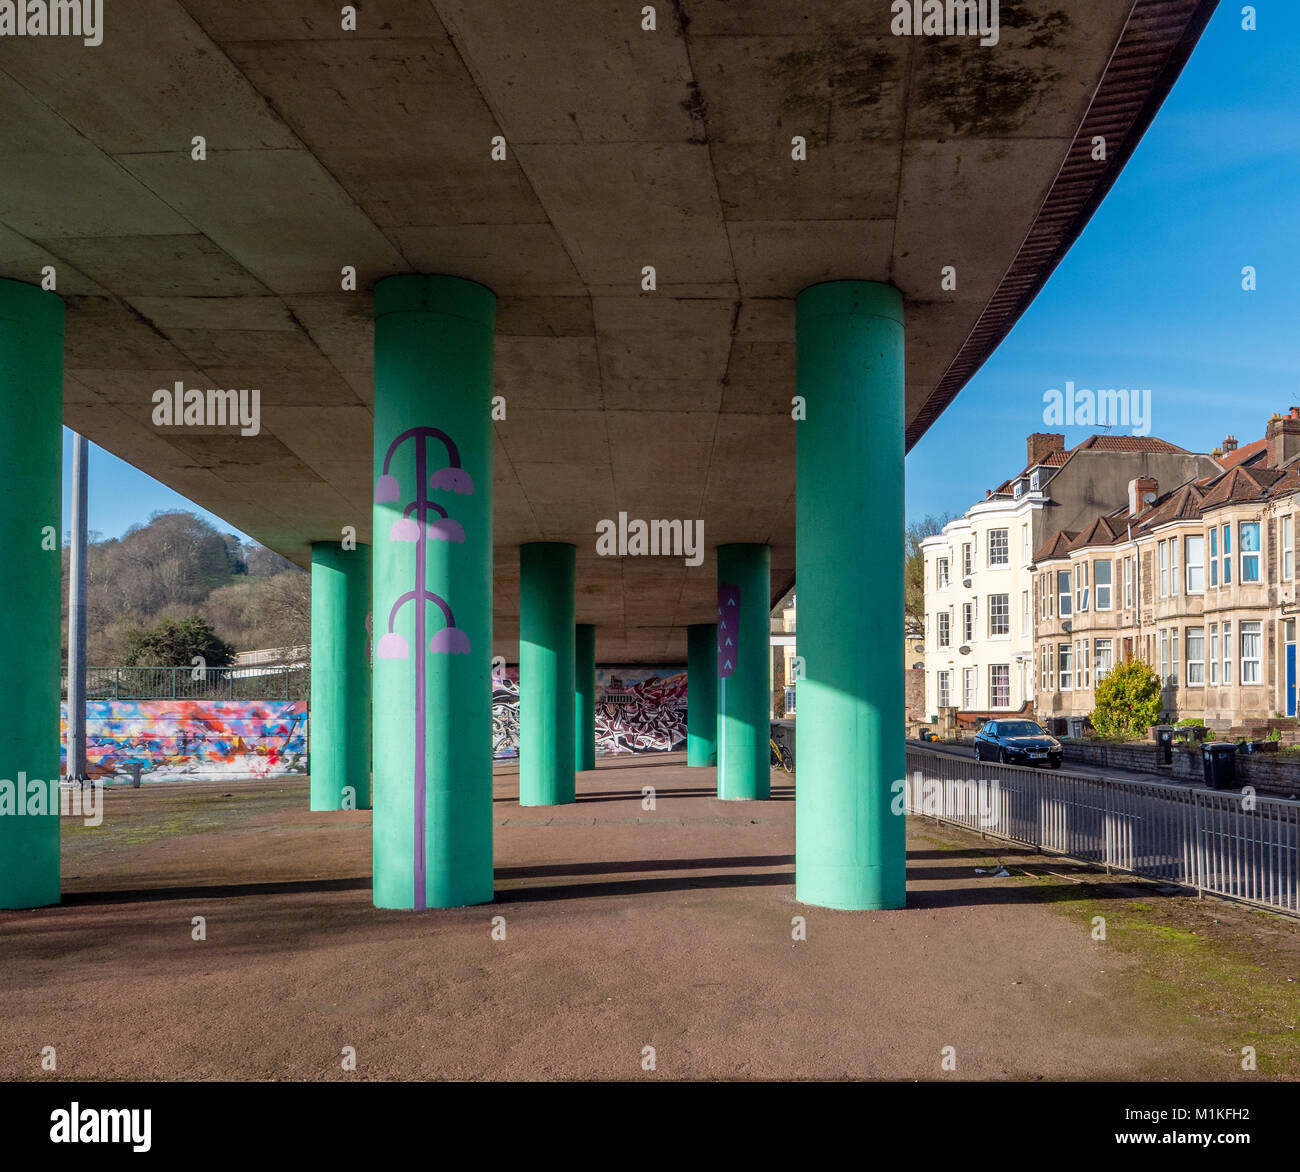 Painted bridge supports under the Cumberland Basin road system linking the A4 with the city ring road in Hotwells - Stock Image